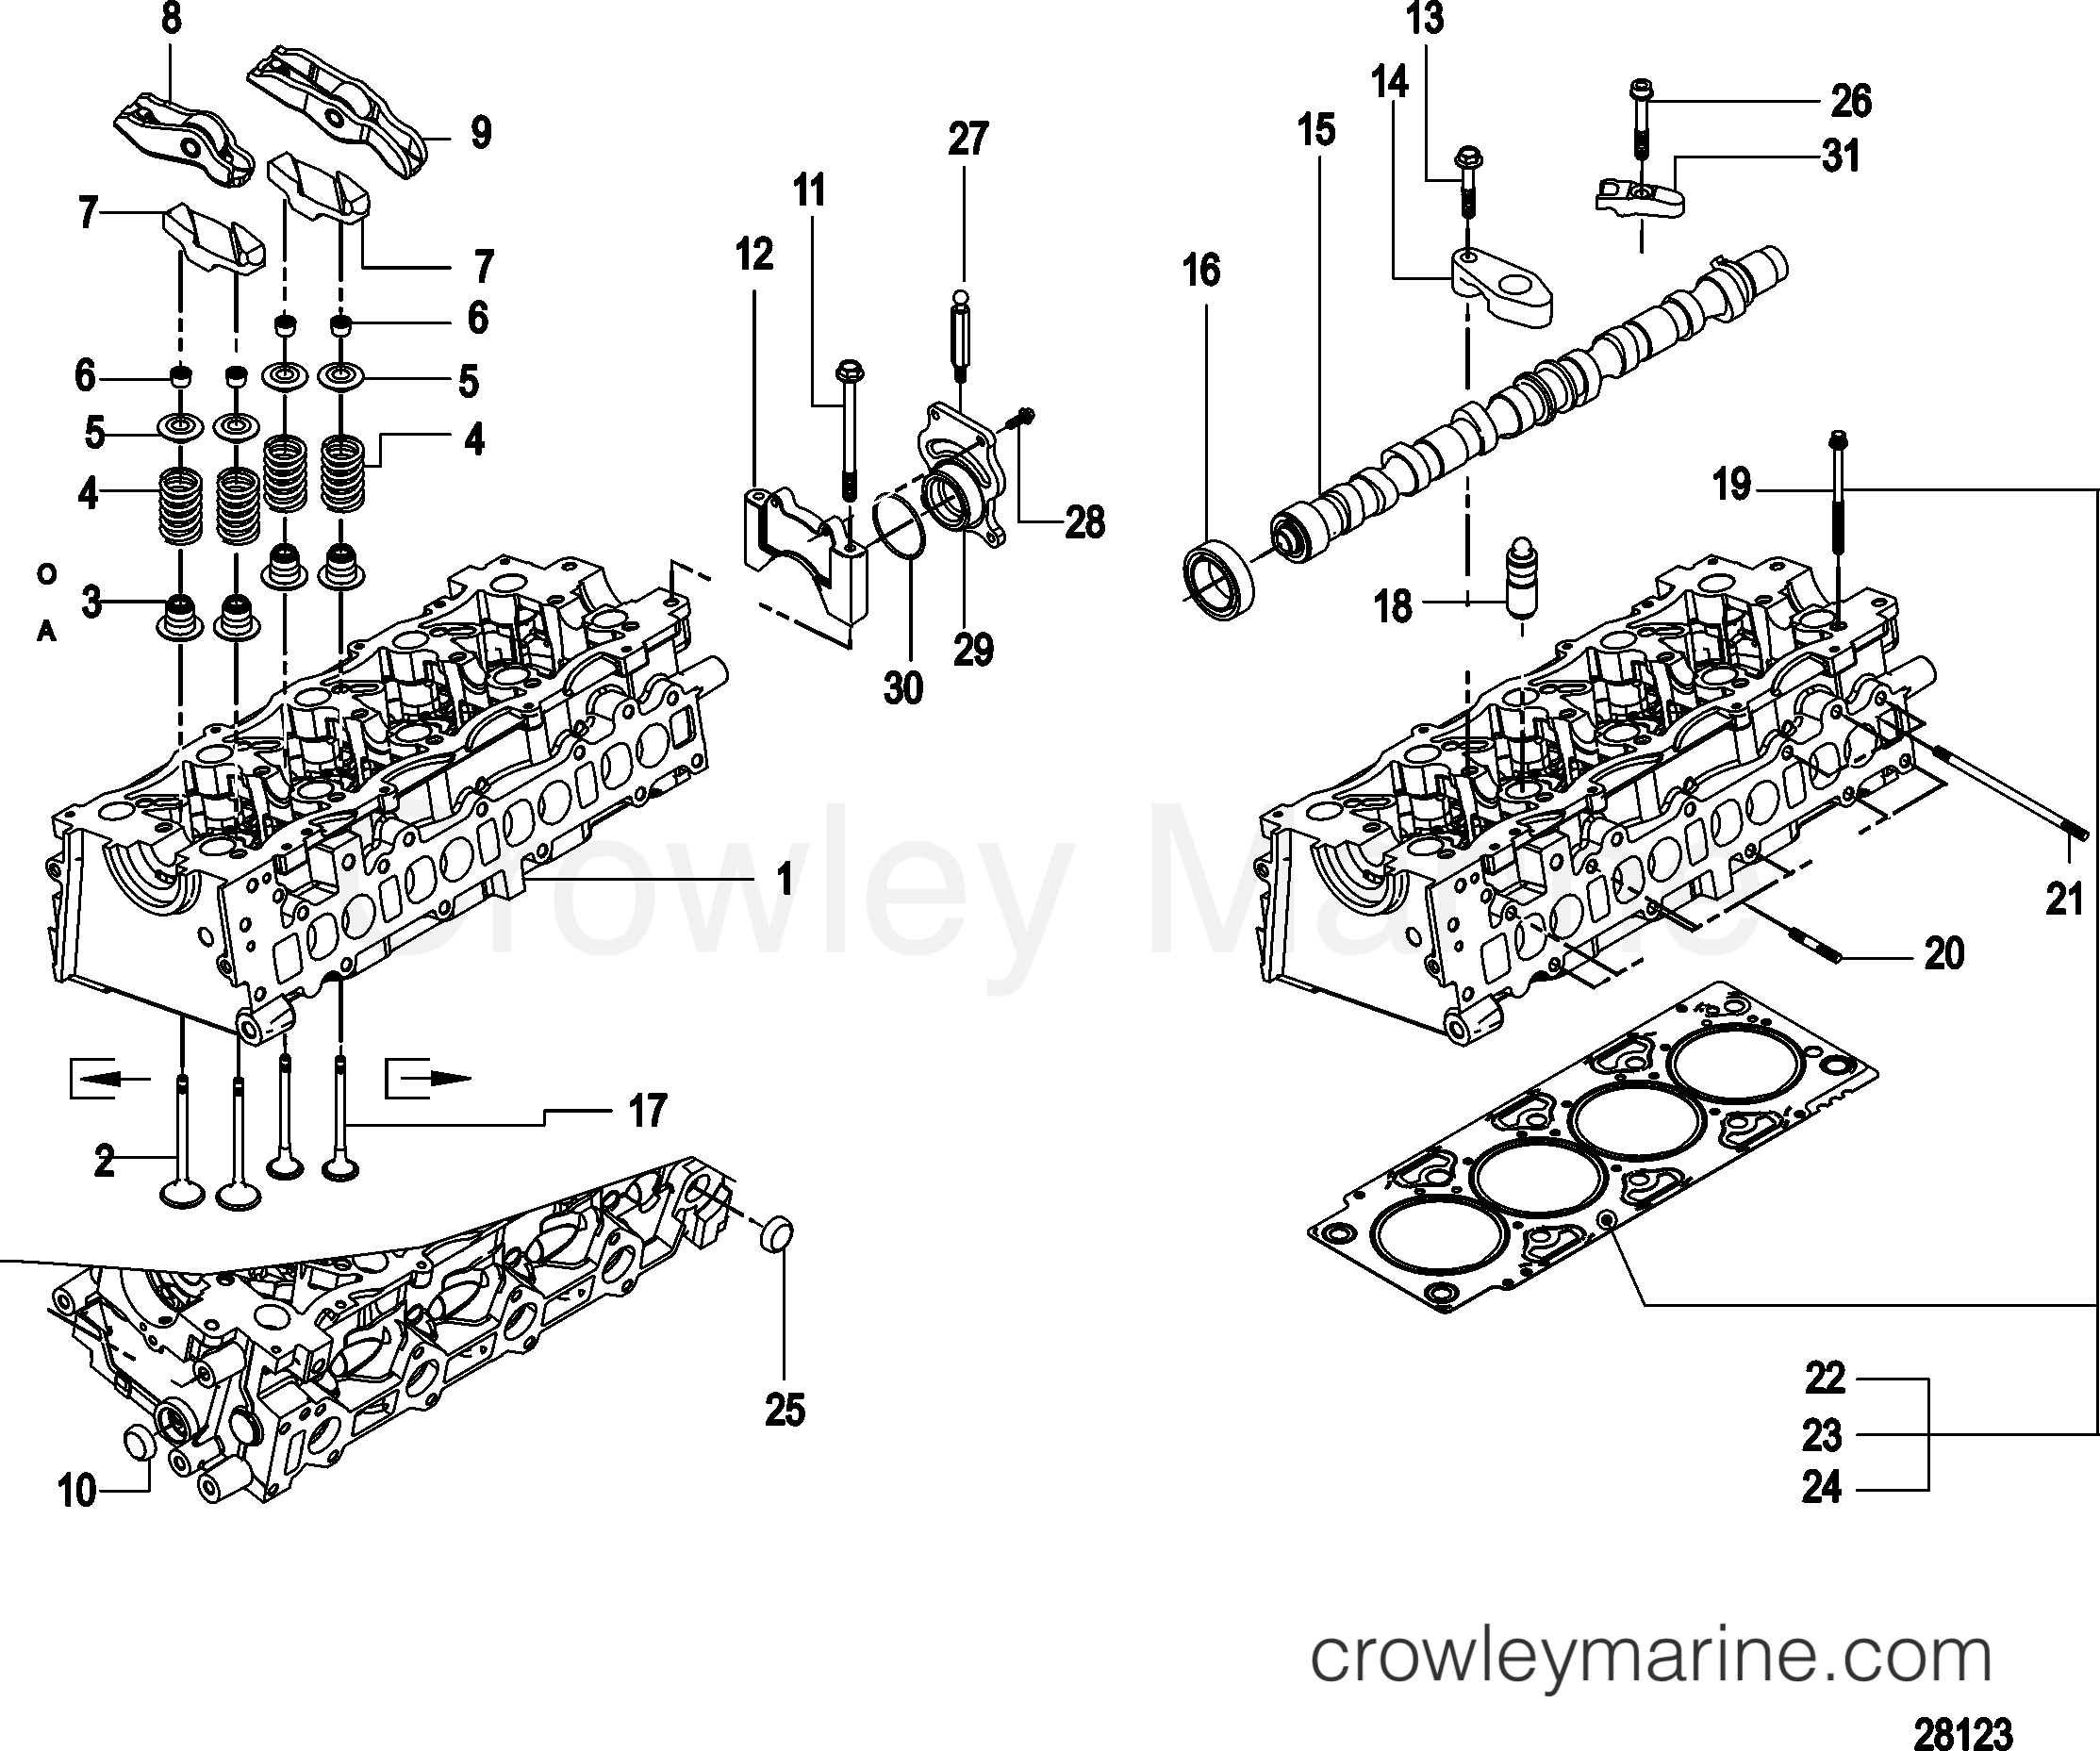 Camshaft And Cylinder Head